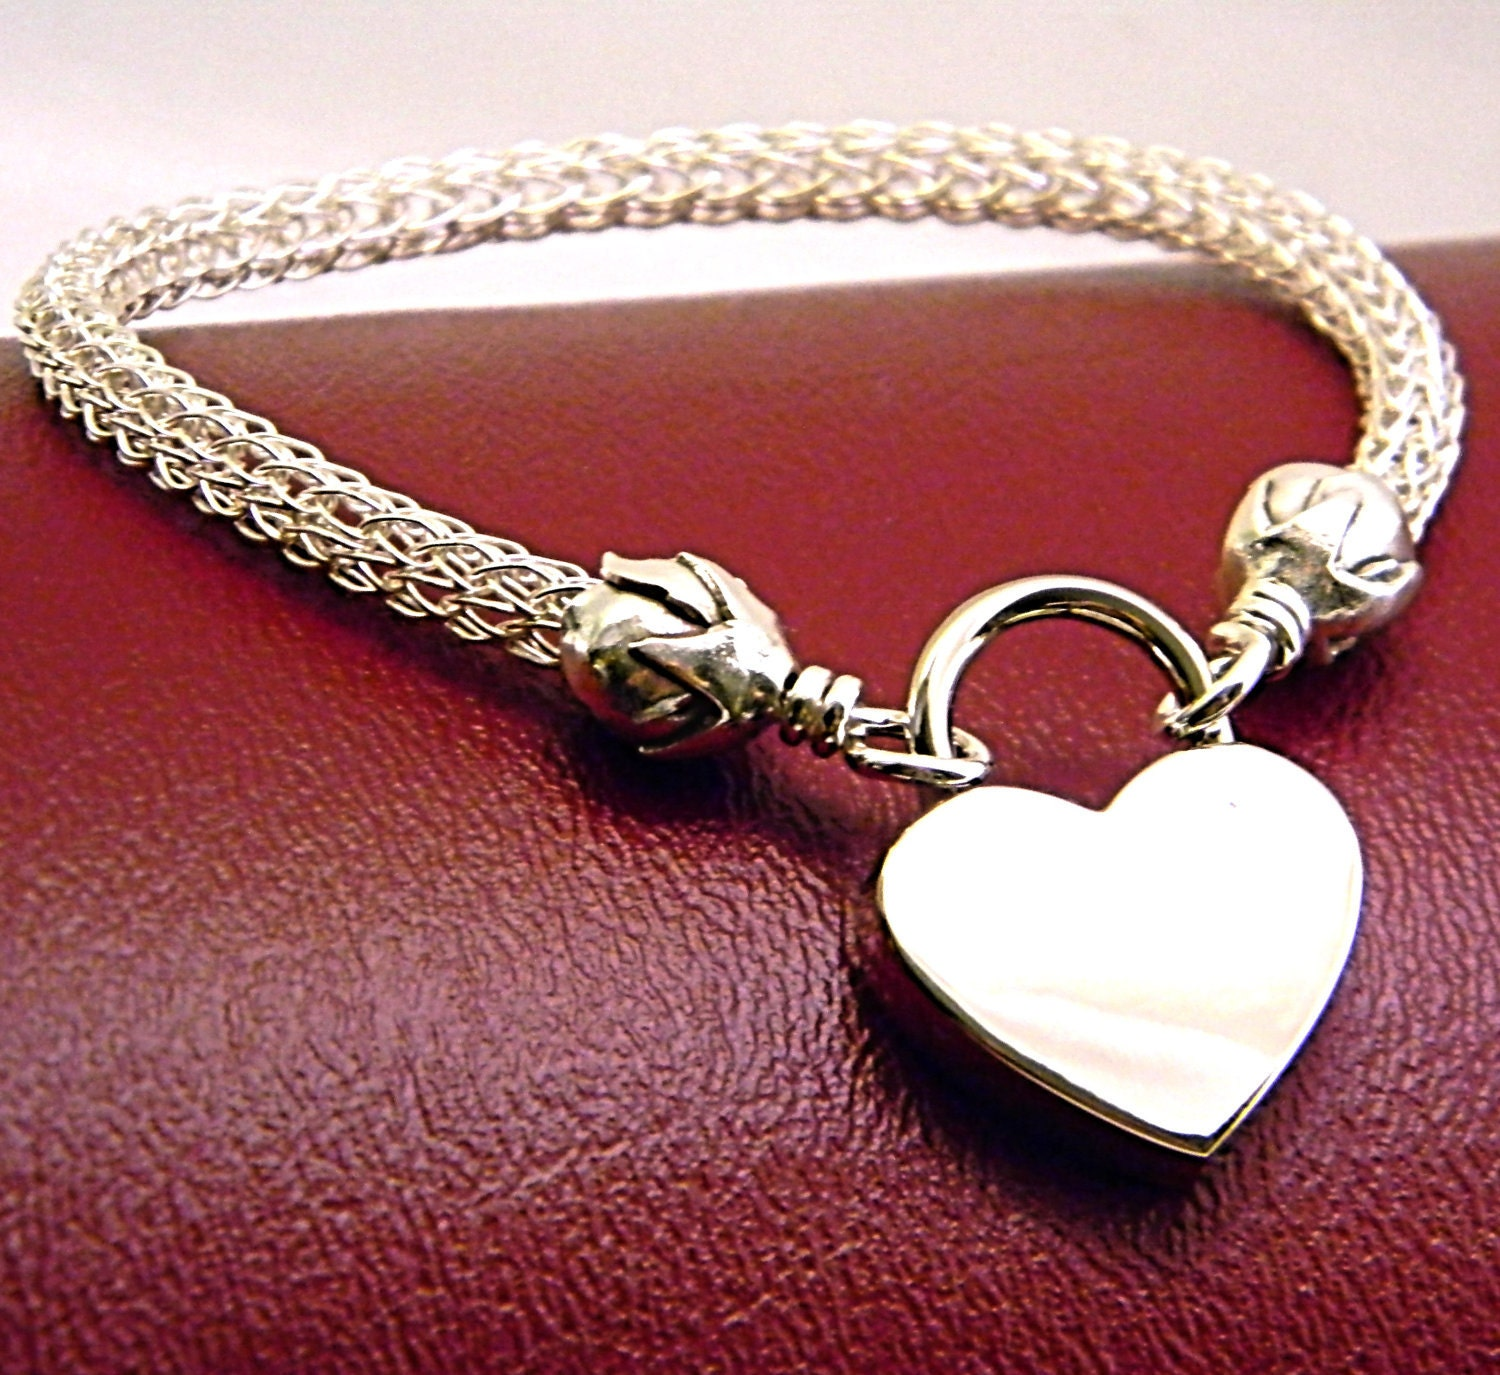 day jewellery goth anklet collar heart fetish anklets bondage stainless kinky sub bdsm steel mini pin locking